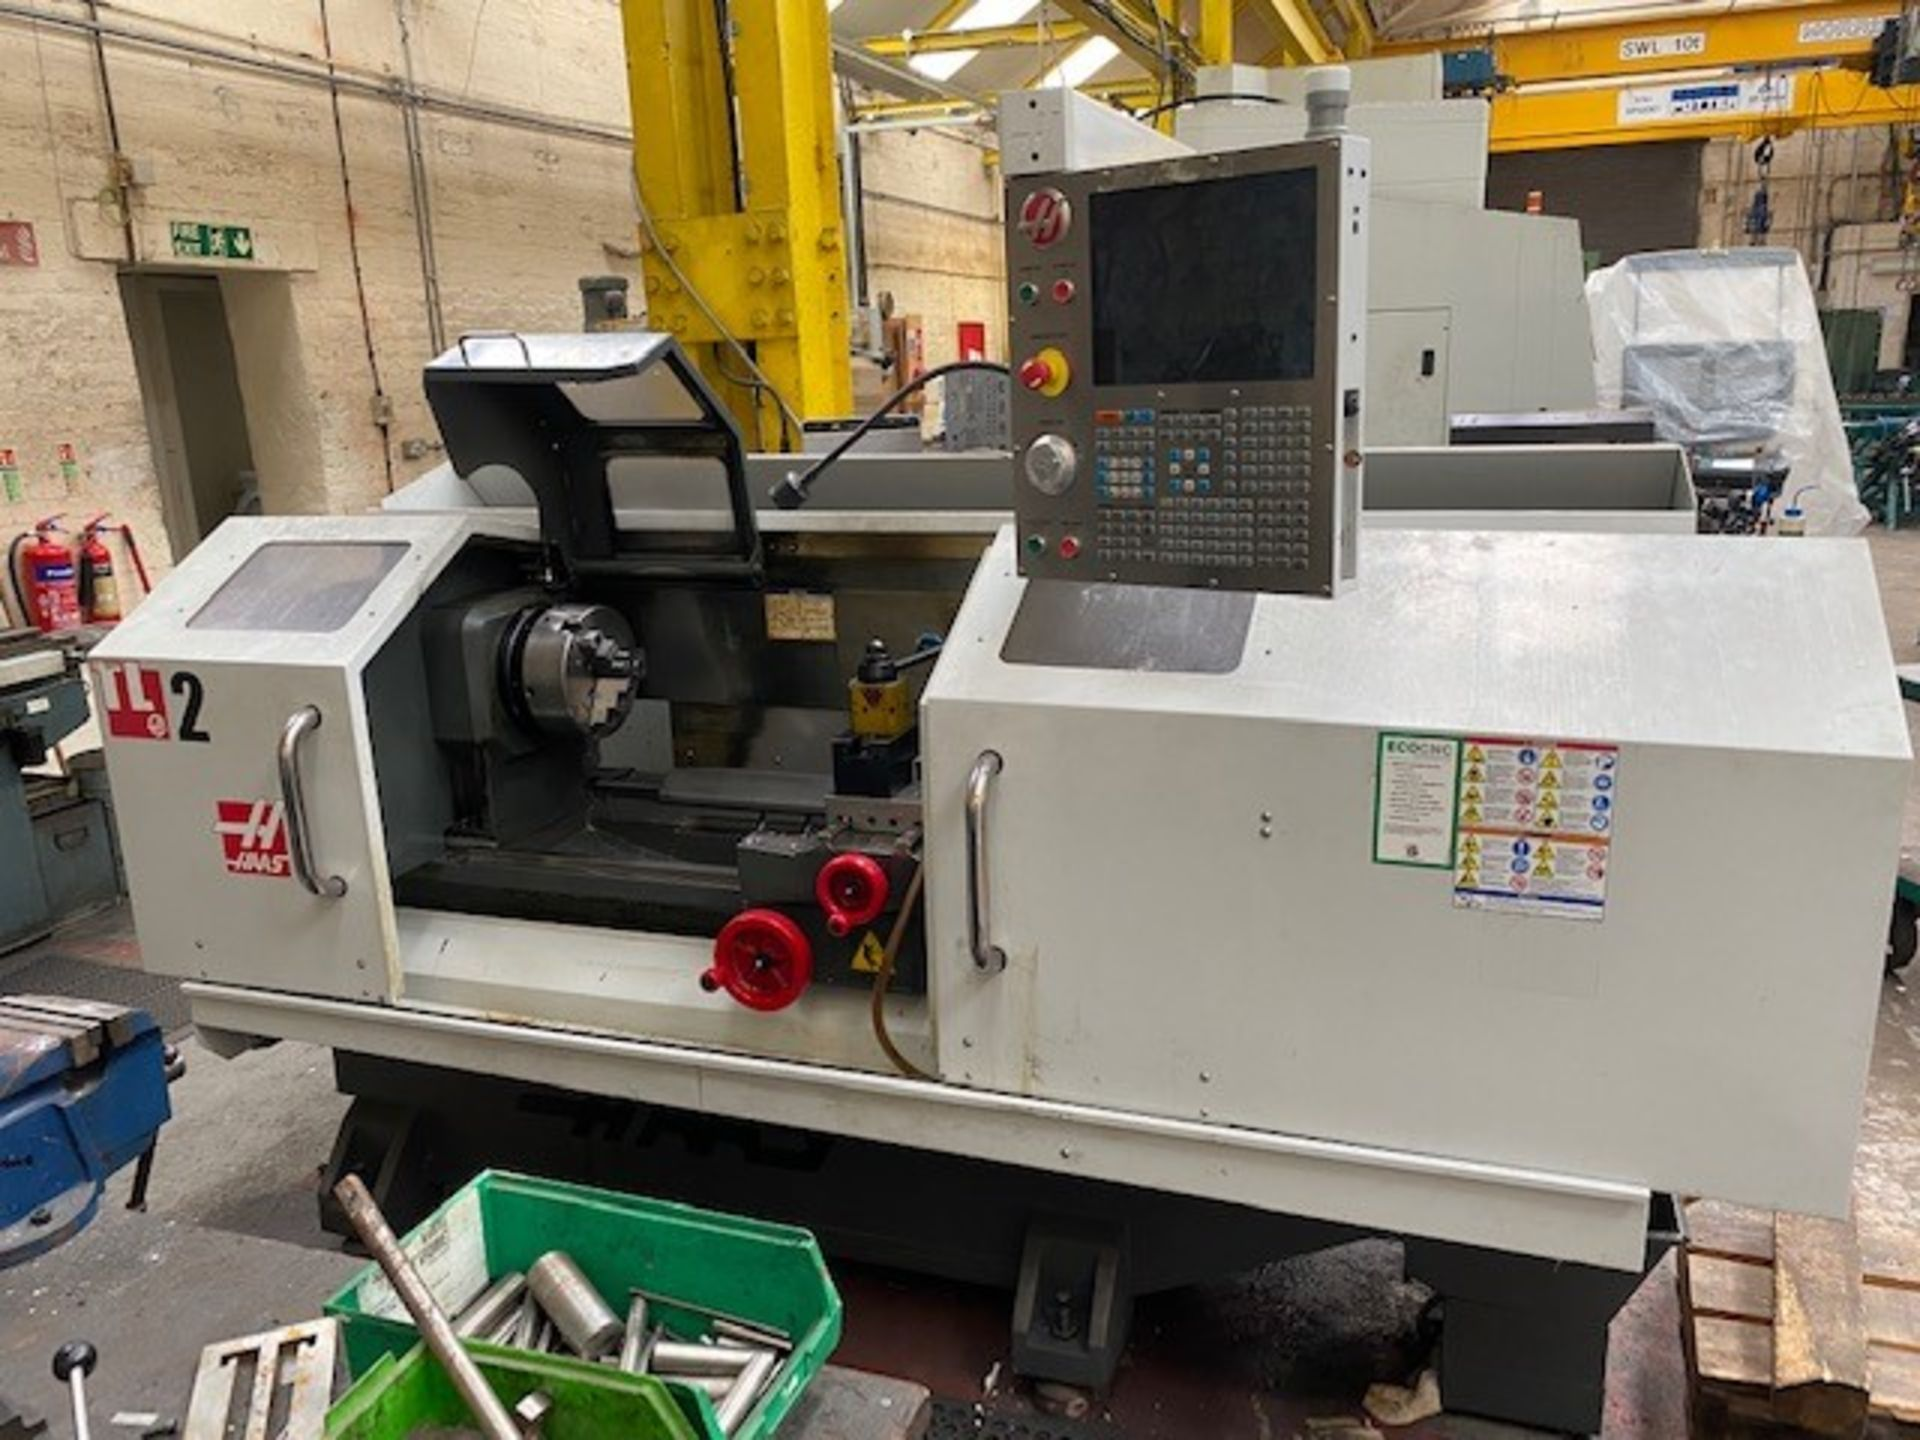 HASS ENCLOSED 2-AXIS CNC TOOLROOM LATHE WITH HASS CONTROLLER MODEL: TL-2 SERIAL NO: 3089388 DMF: